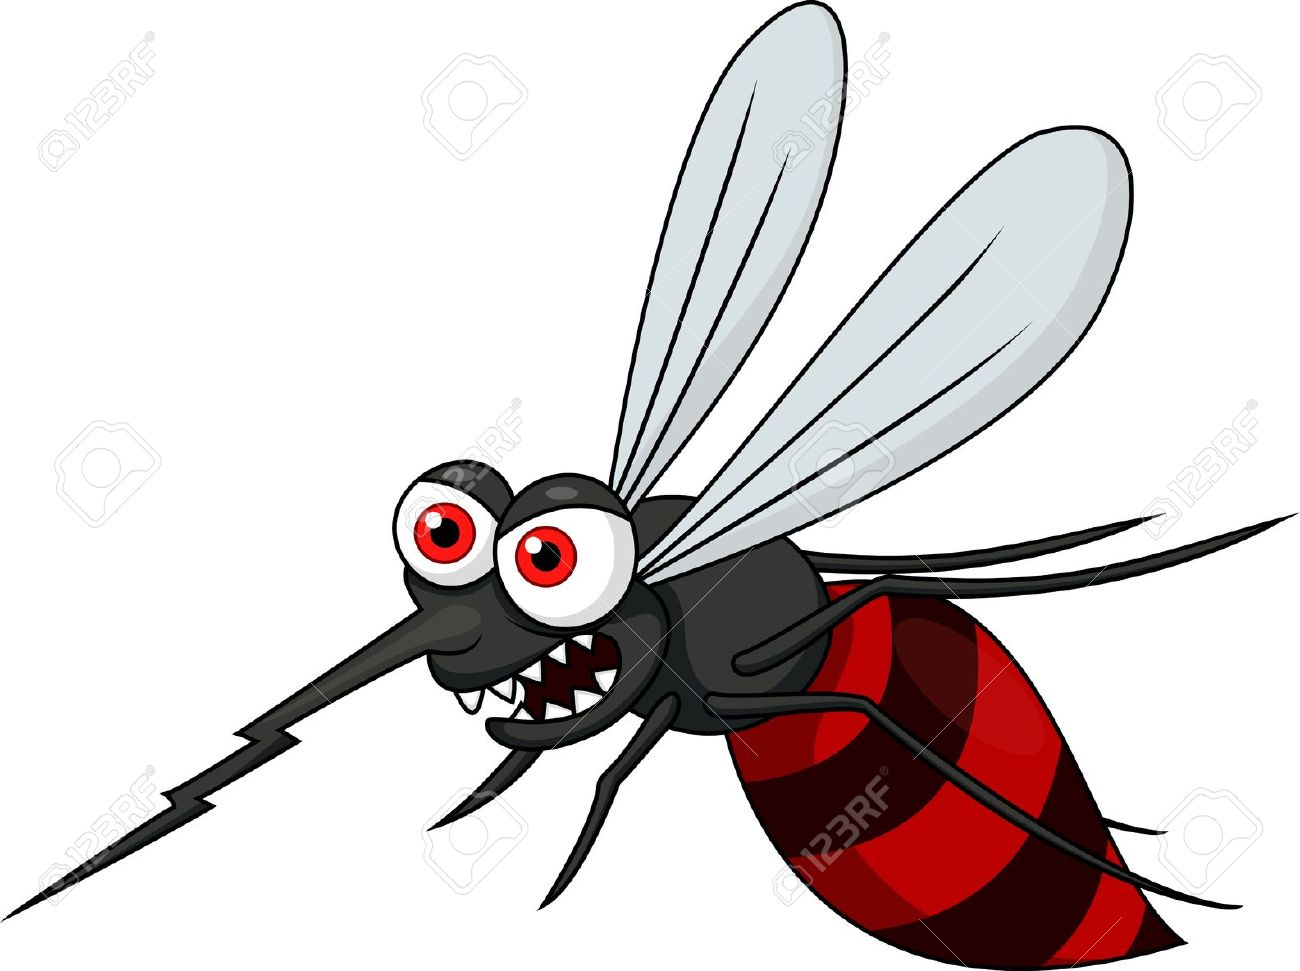 Bugs clipart mosquito Mosquito Clipart Free Clipart Cute